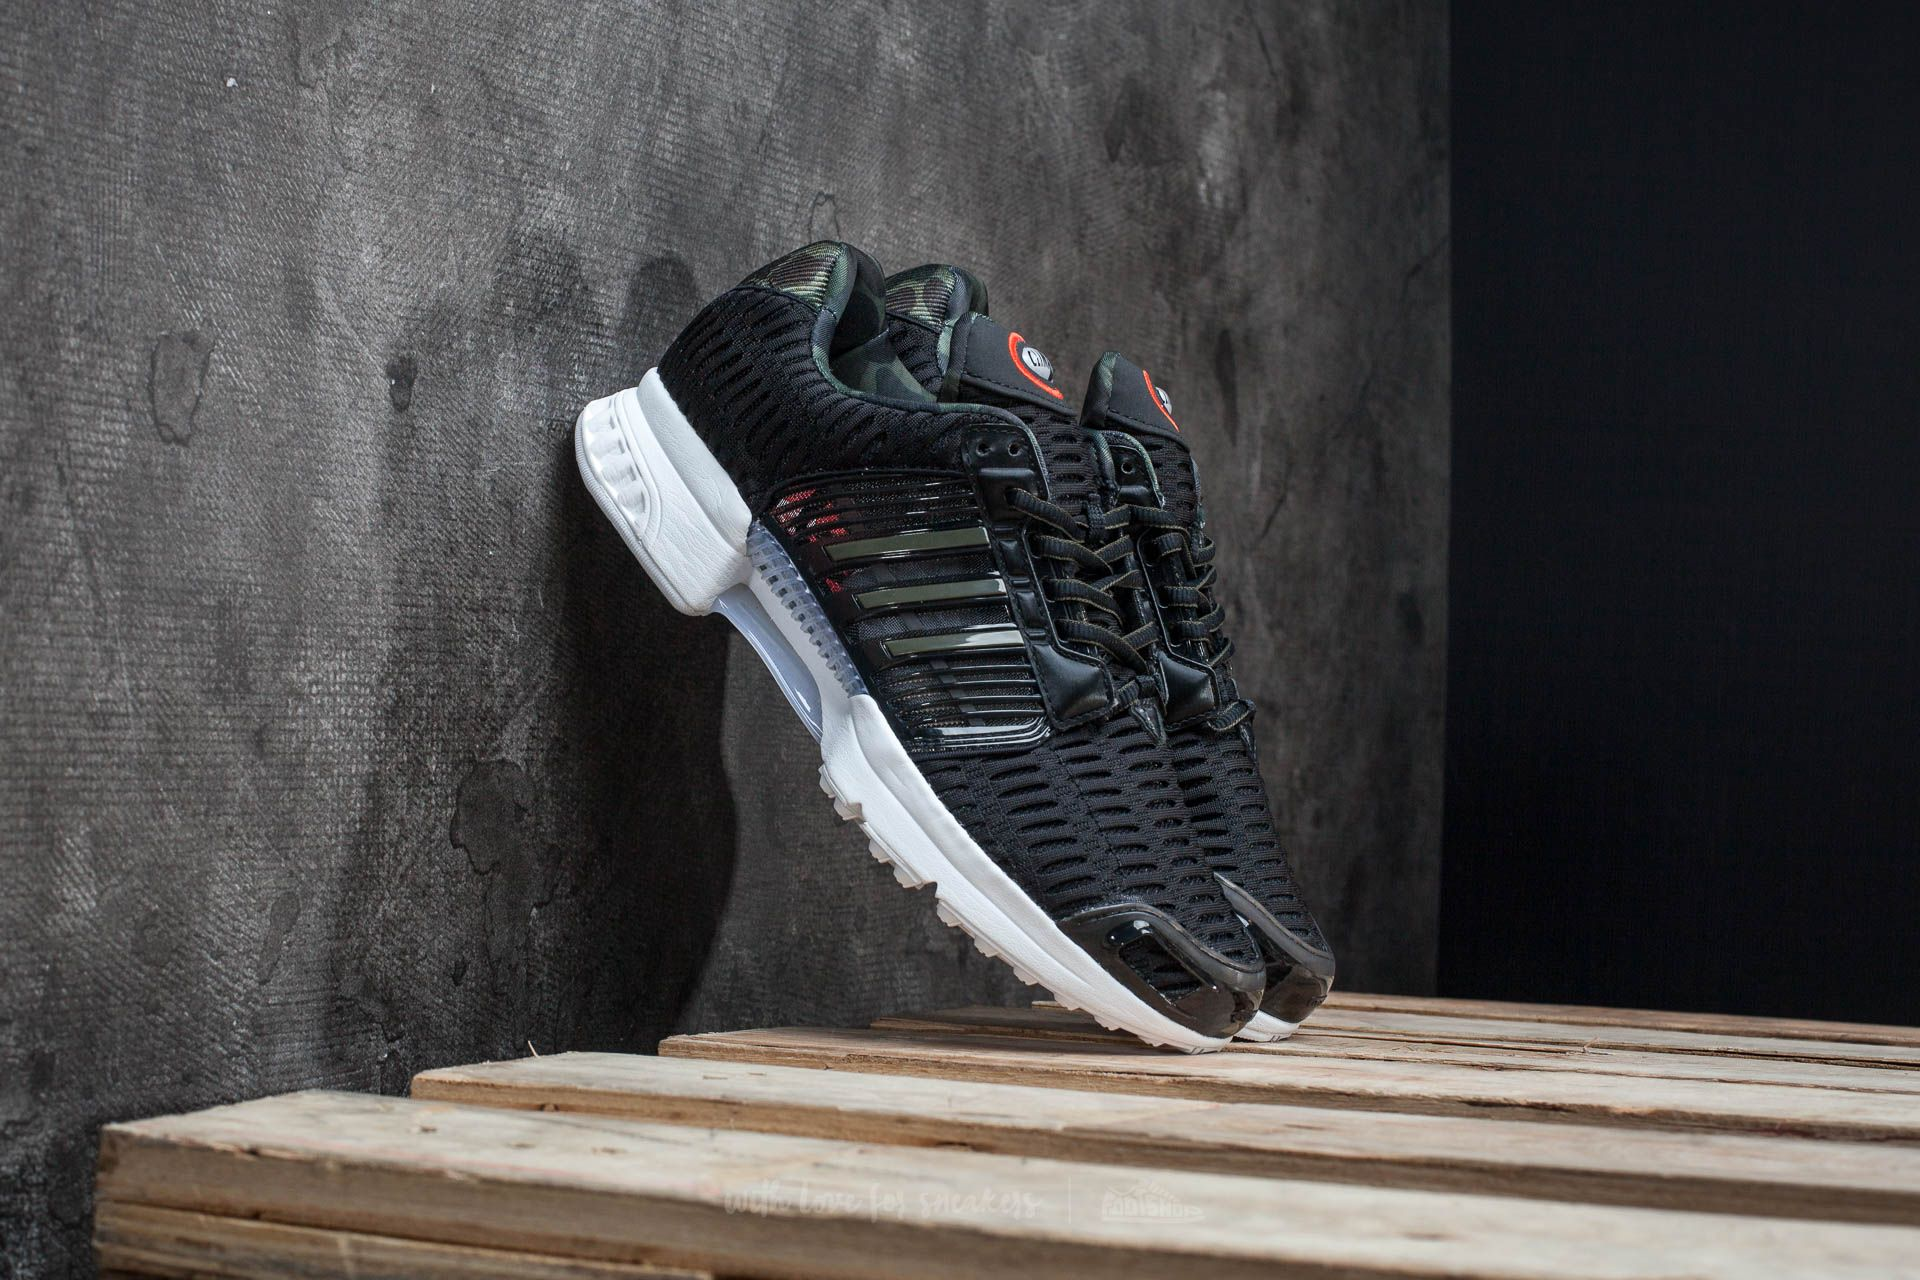 adidas Climacool 1 Core Black/ Running White - 14822